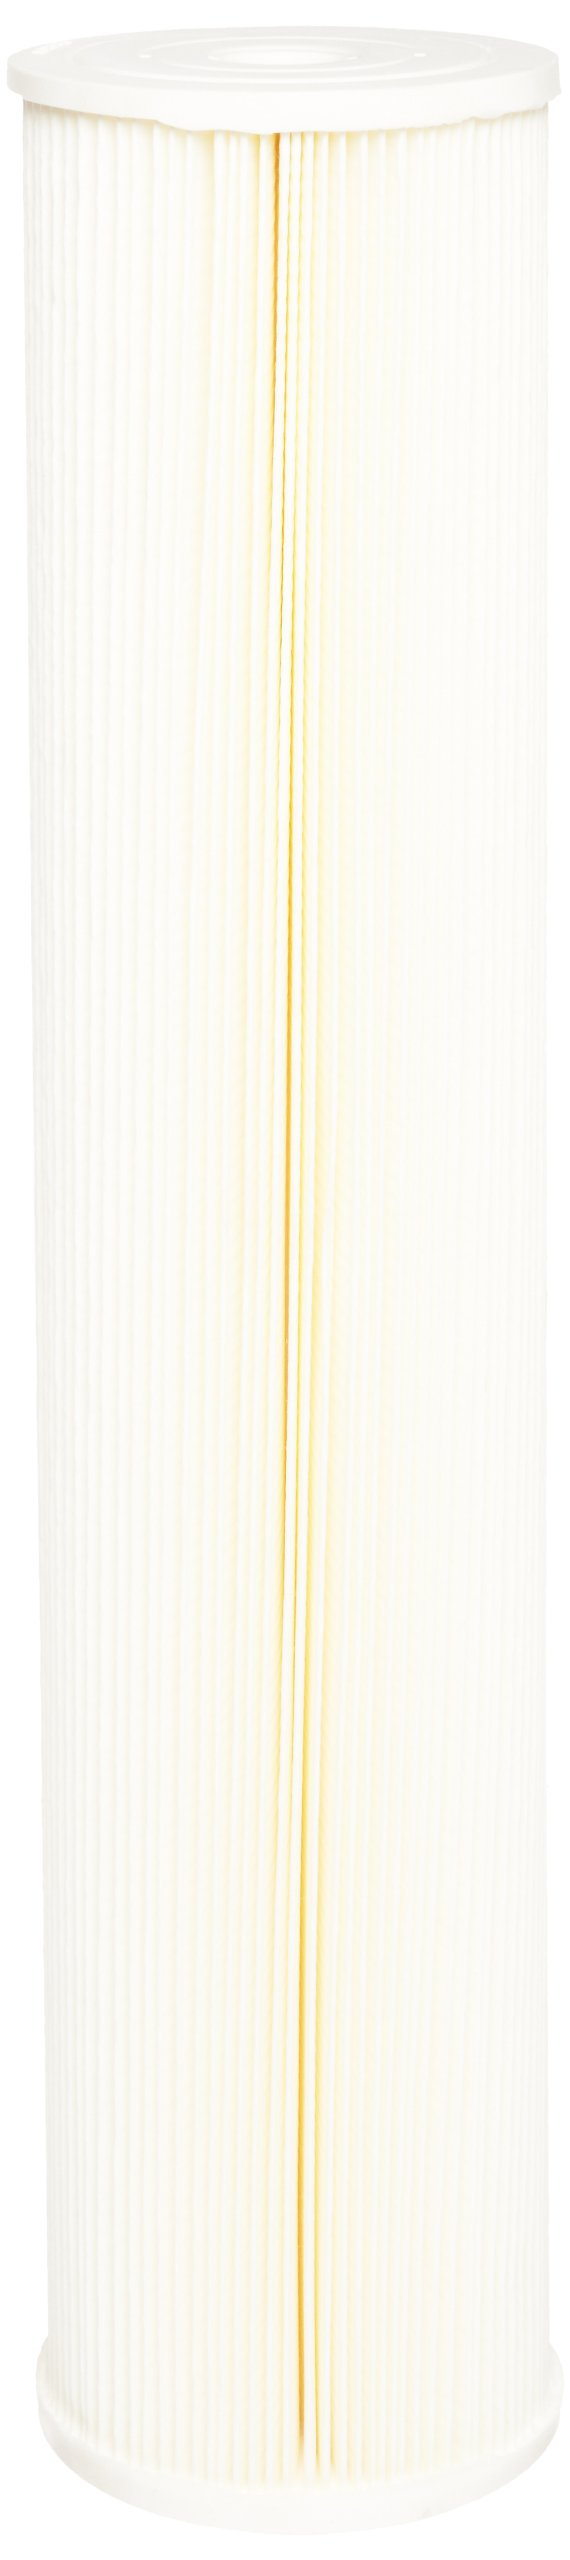 Pentek ECP5-20BB Pleated Cellulose Polyester Filter Cartridge, 20'' x 4-1/2'', 5 Microns